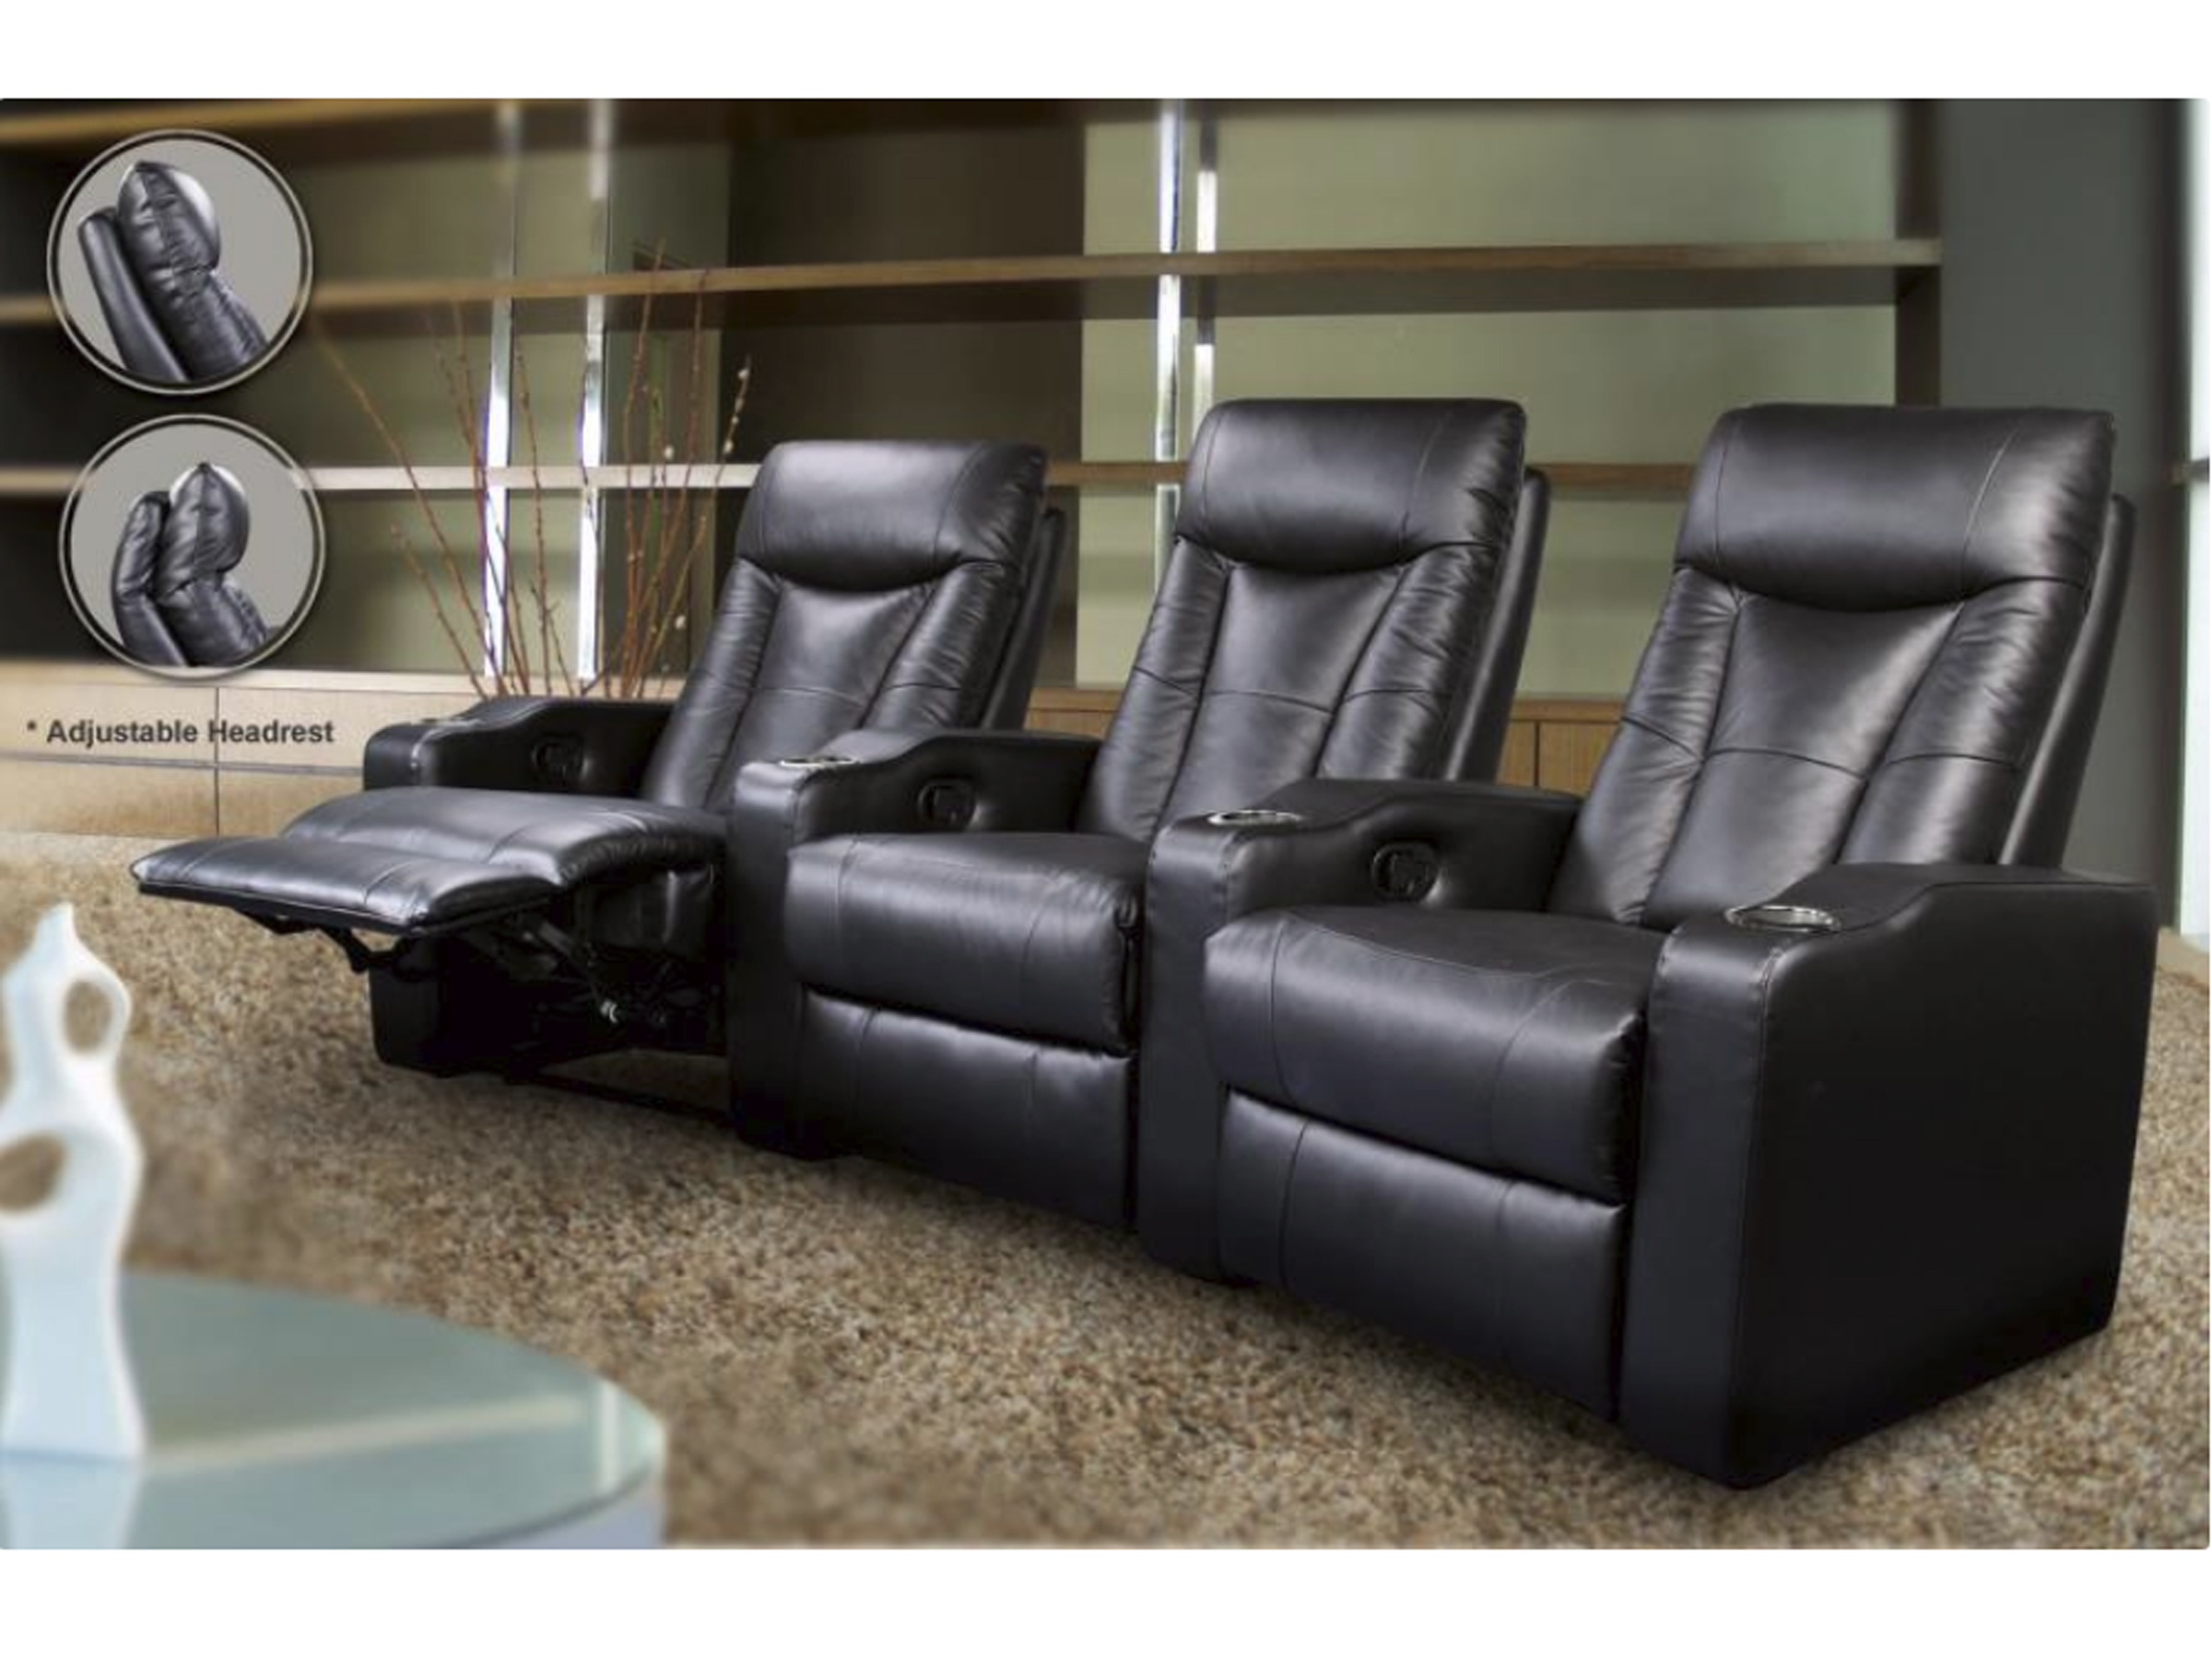 Arris - Home Theater Seats Black